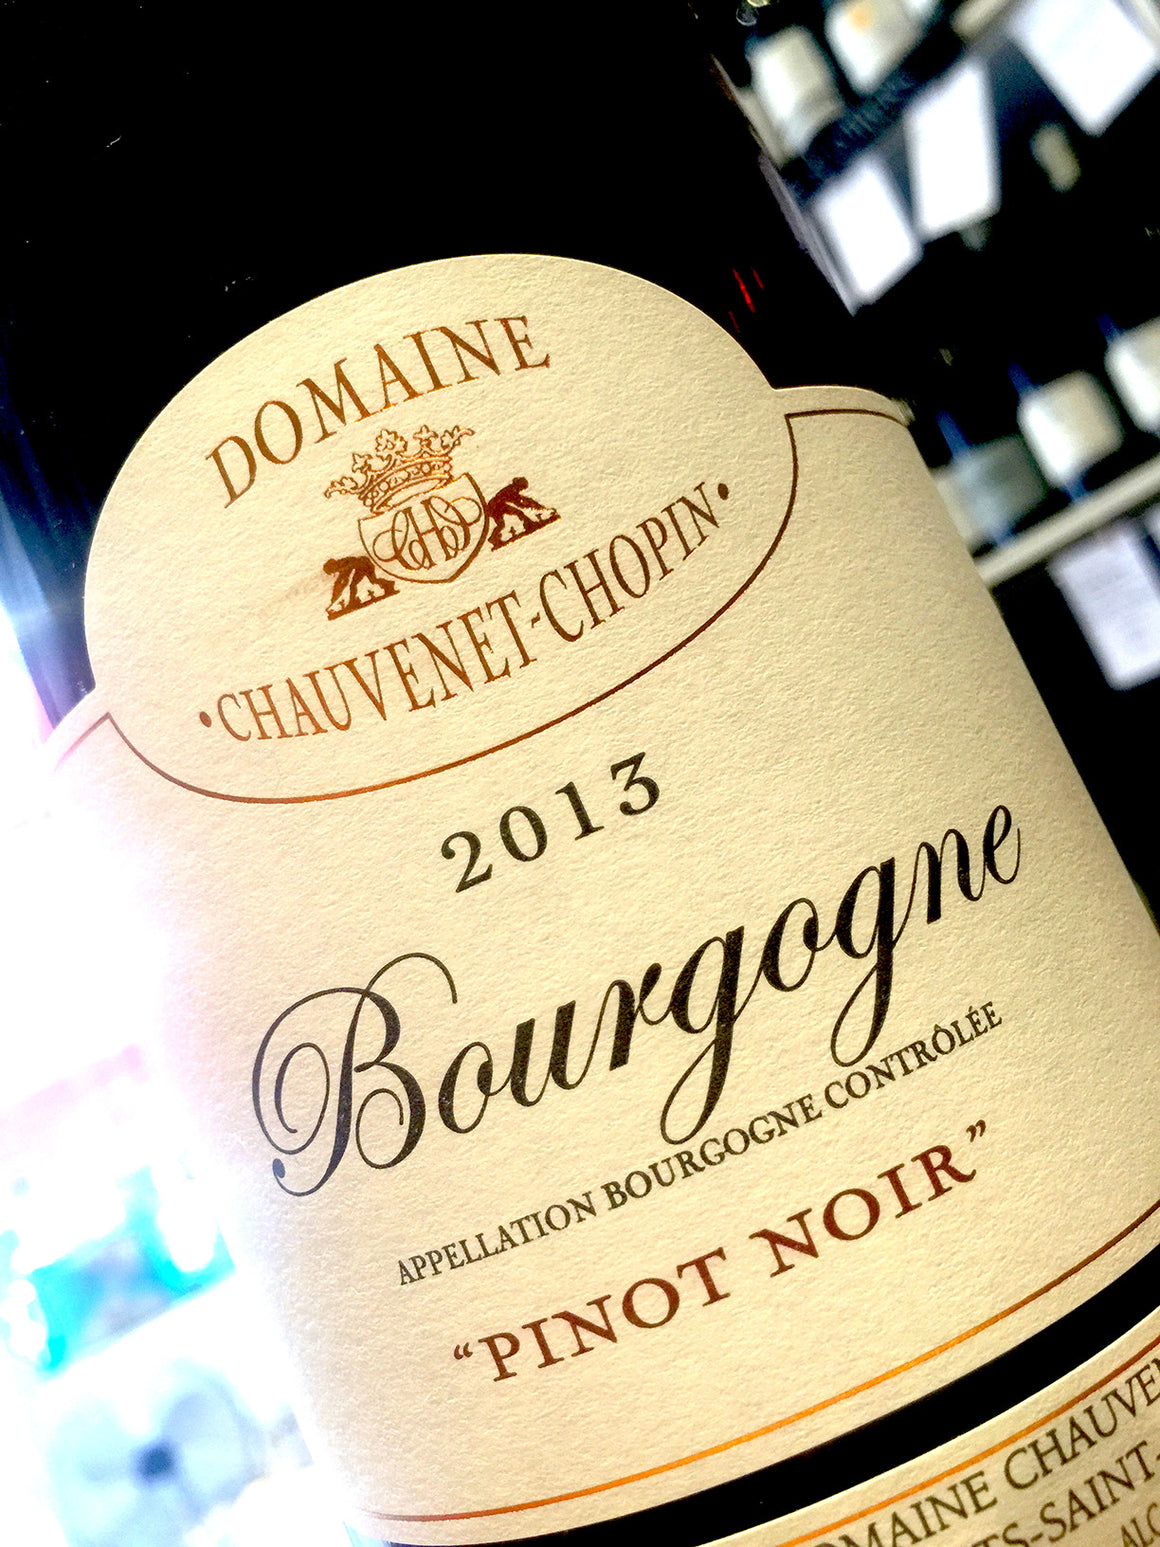 Domaine Joseph Roty Bourgogne Pressonniers 2014 75cl